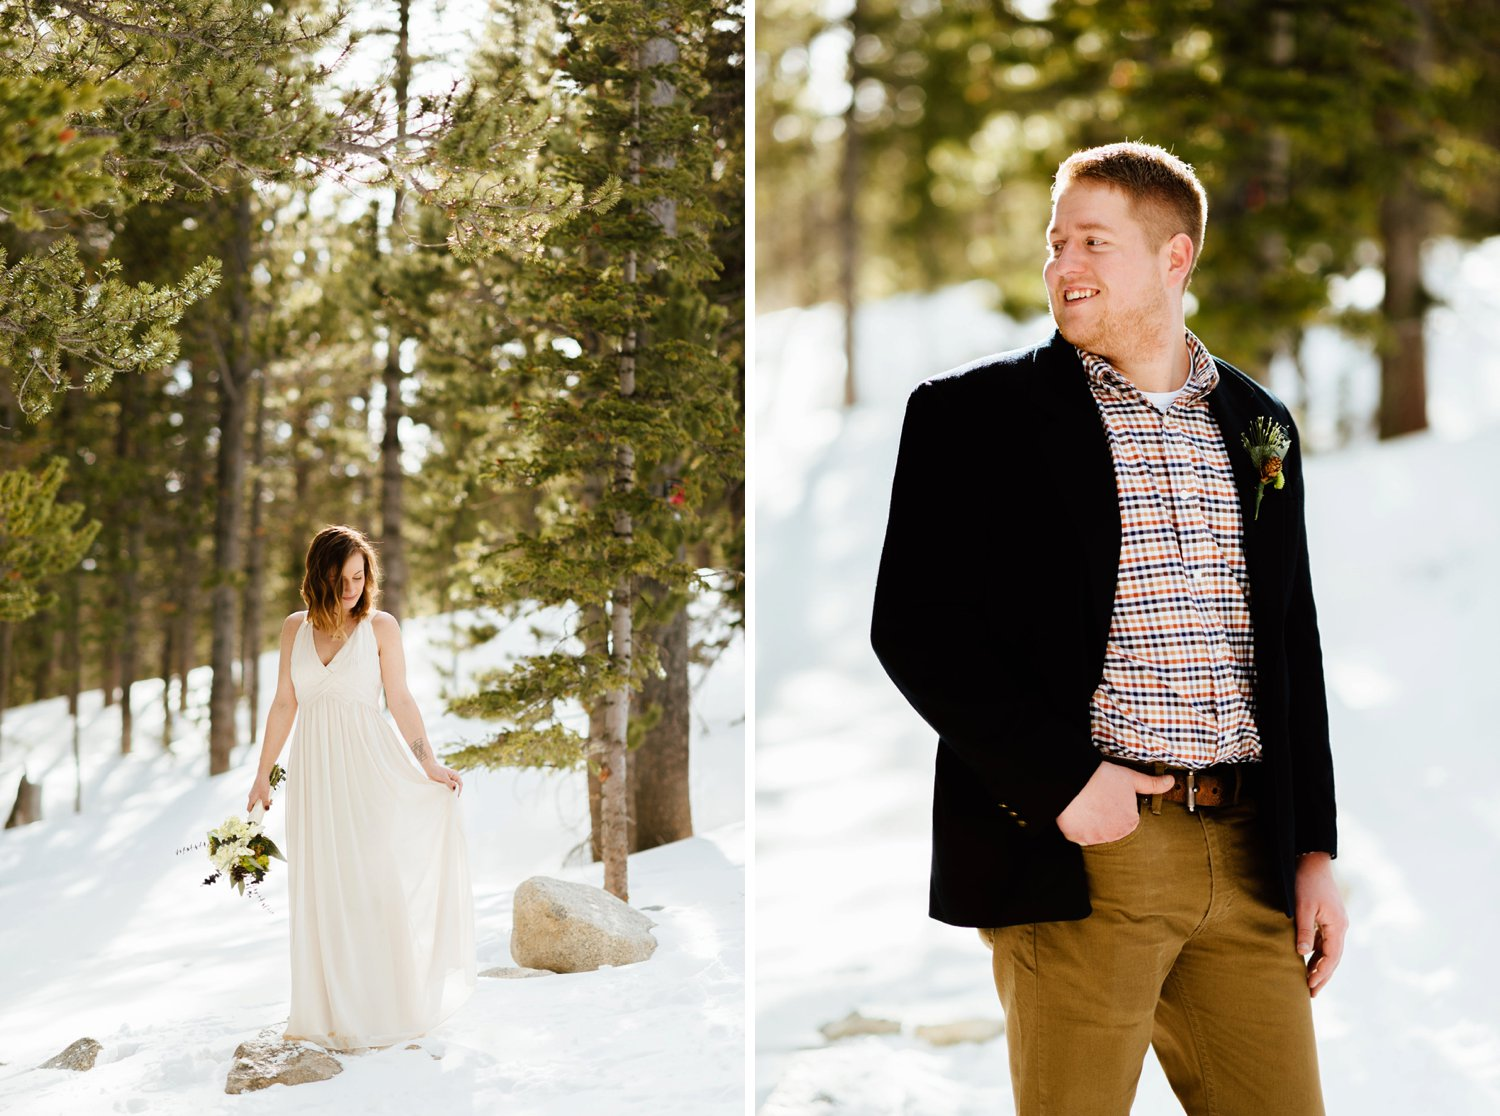 I want to wear a drapey, ivory dress for my wedding! Love the groom's casual wedding attire too!| Mountain wedding pictures by intimate elopement photographer,Maddie Mae.